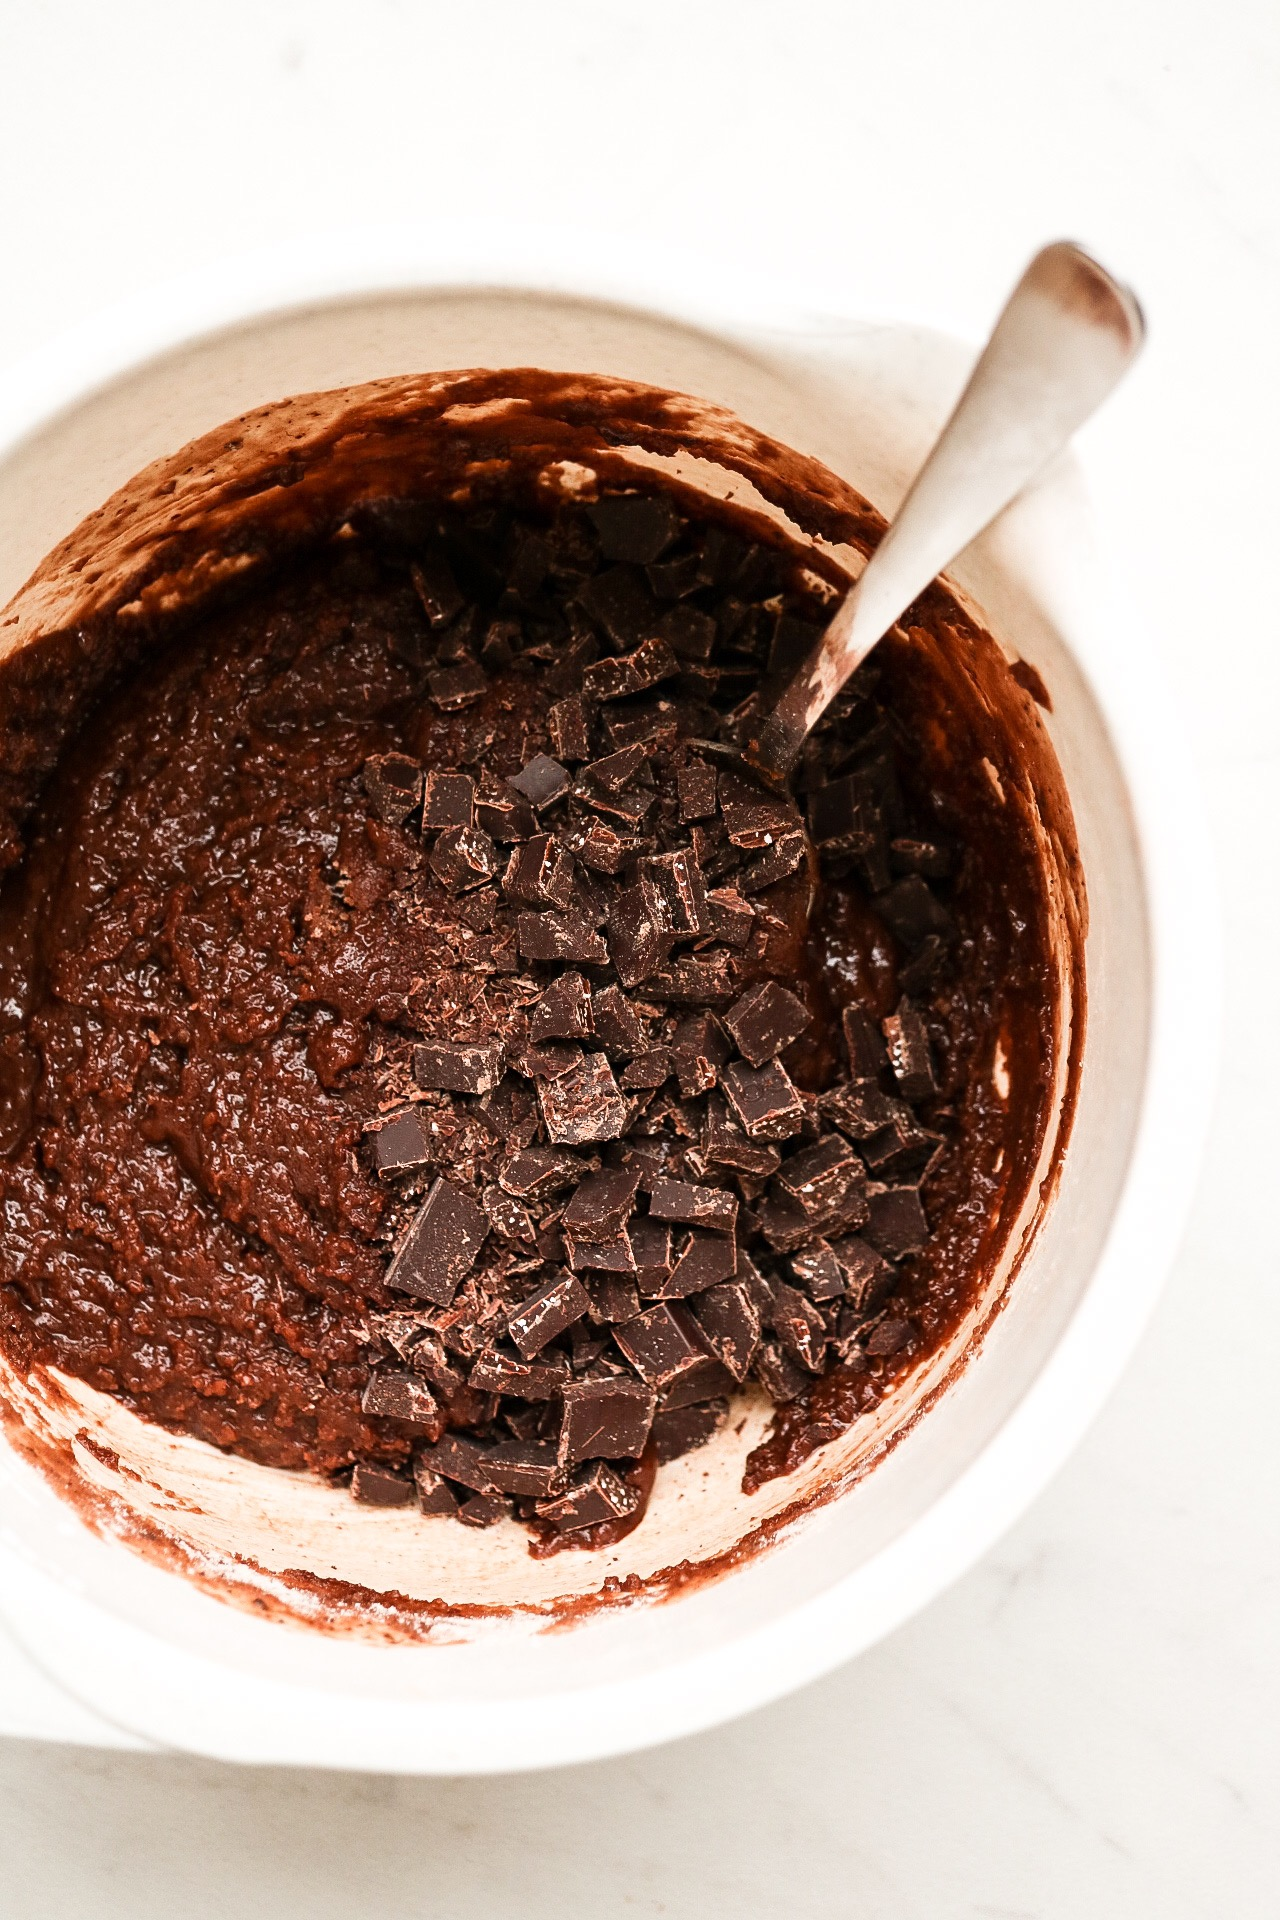 Fold in your chopped chocolate into the batter and mix! Then, just pop em into the oven for about 15 minutes.